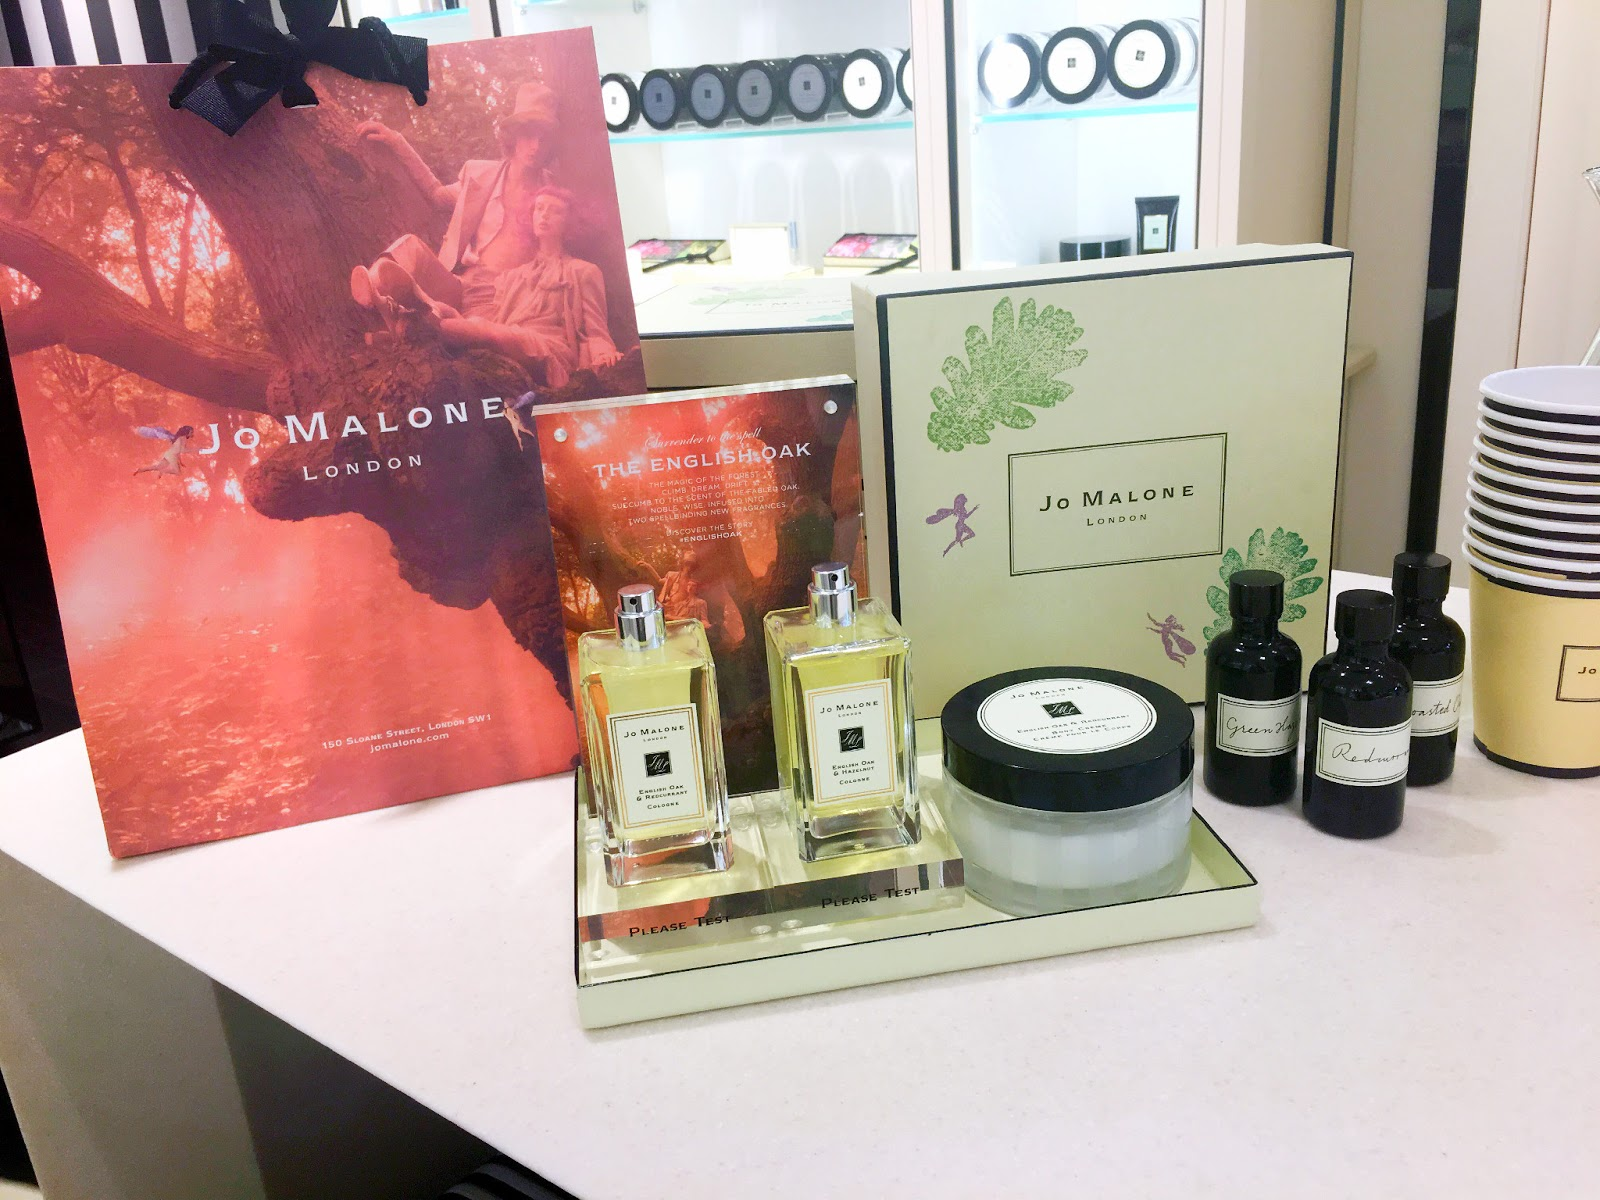 A Jo Malone English Oak Hand and Arm Massage